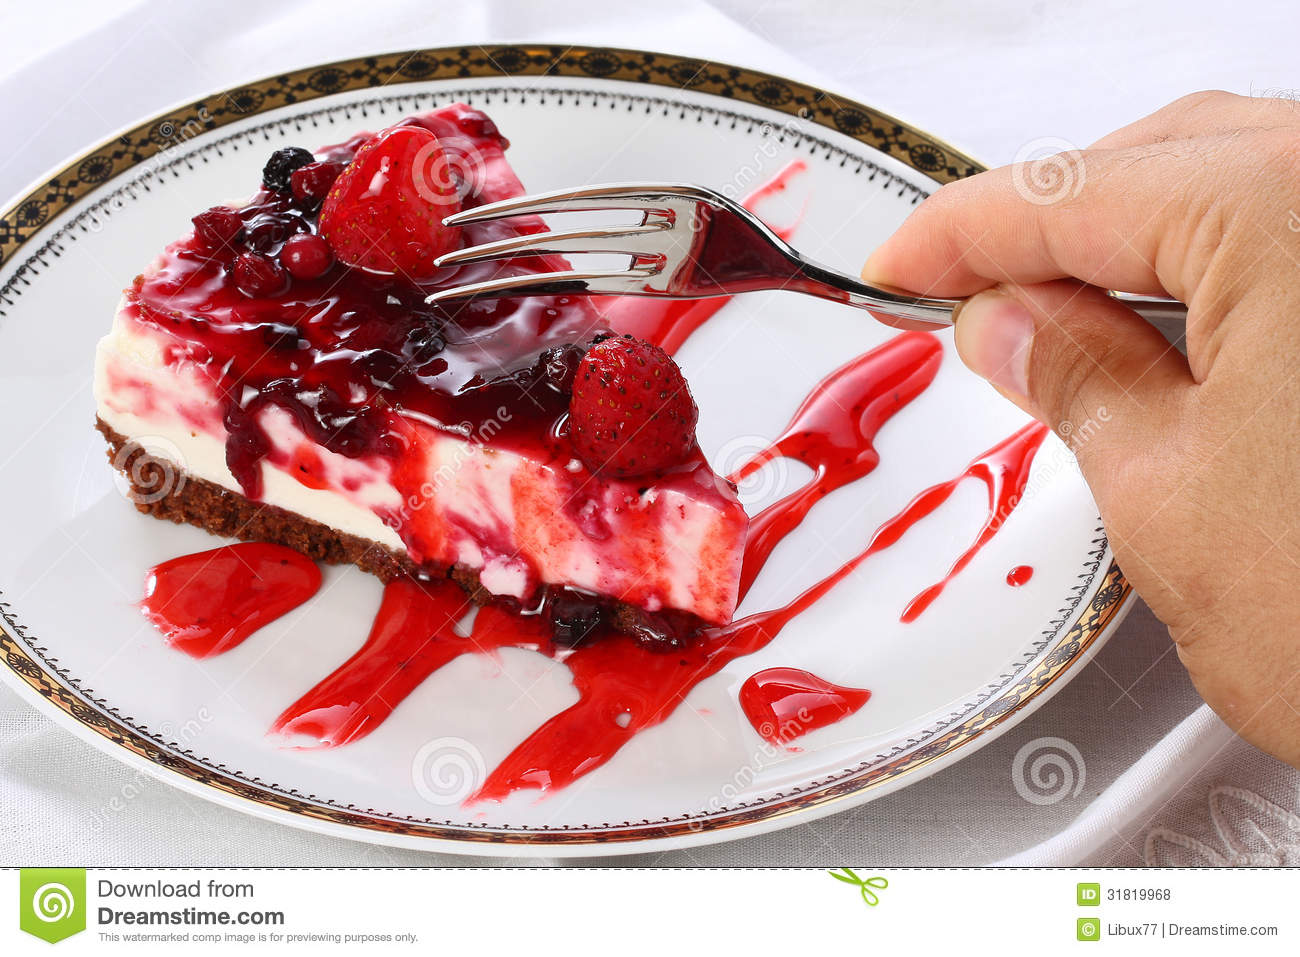 how to draw a slice of cheesecake